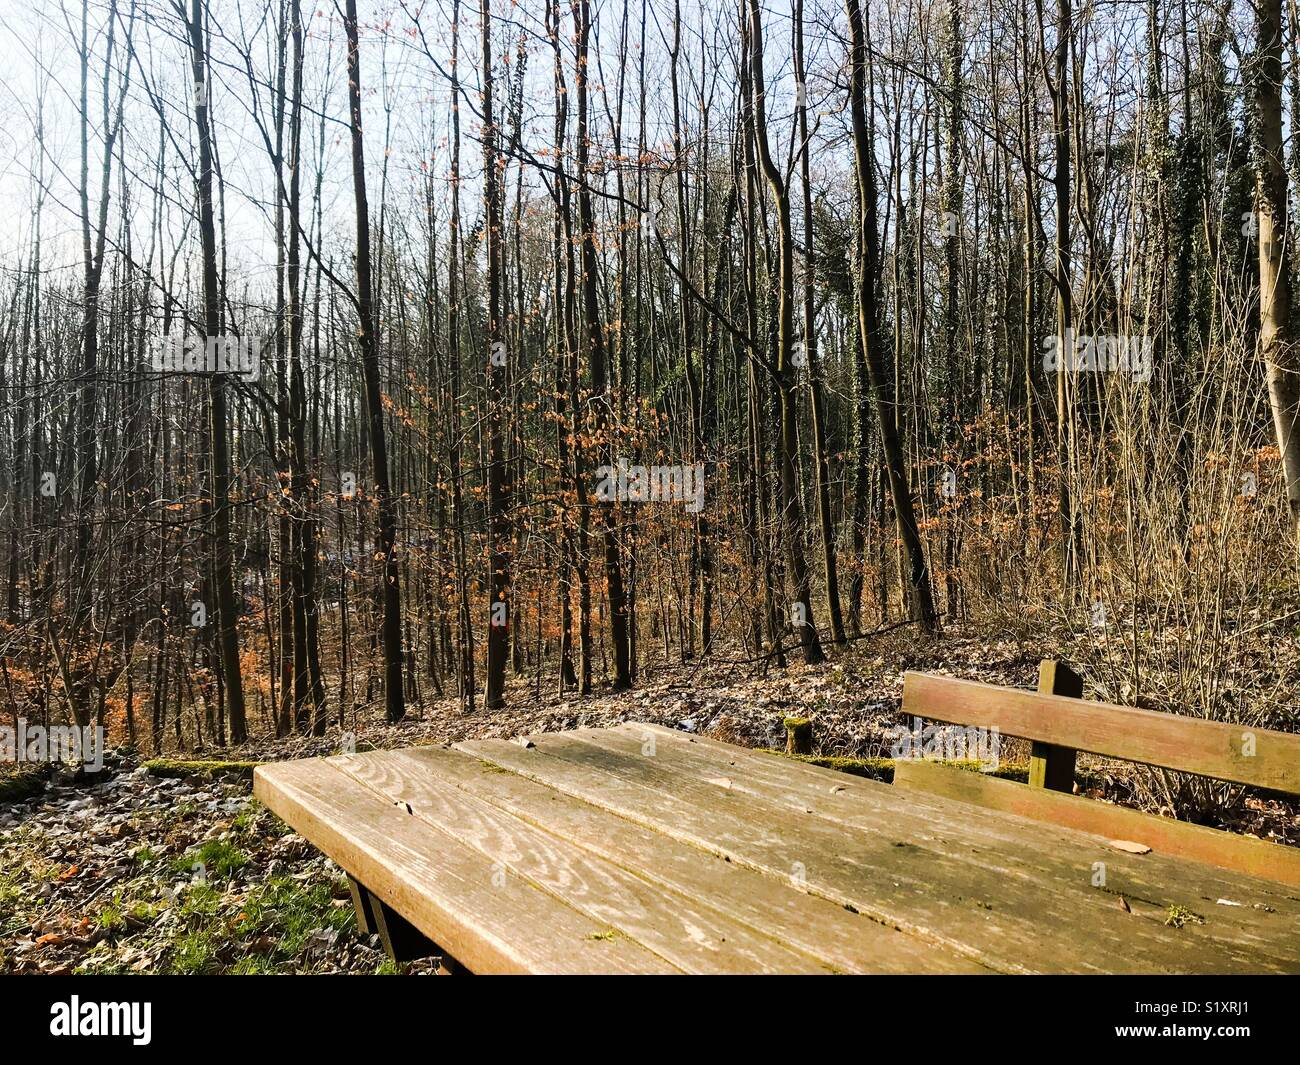 Resting place in a forest - Stock Image